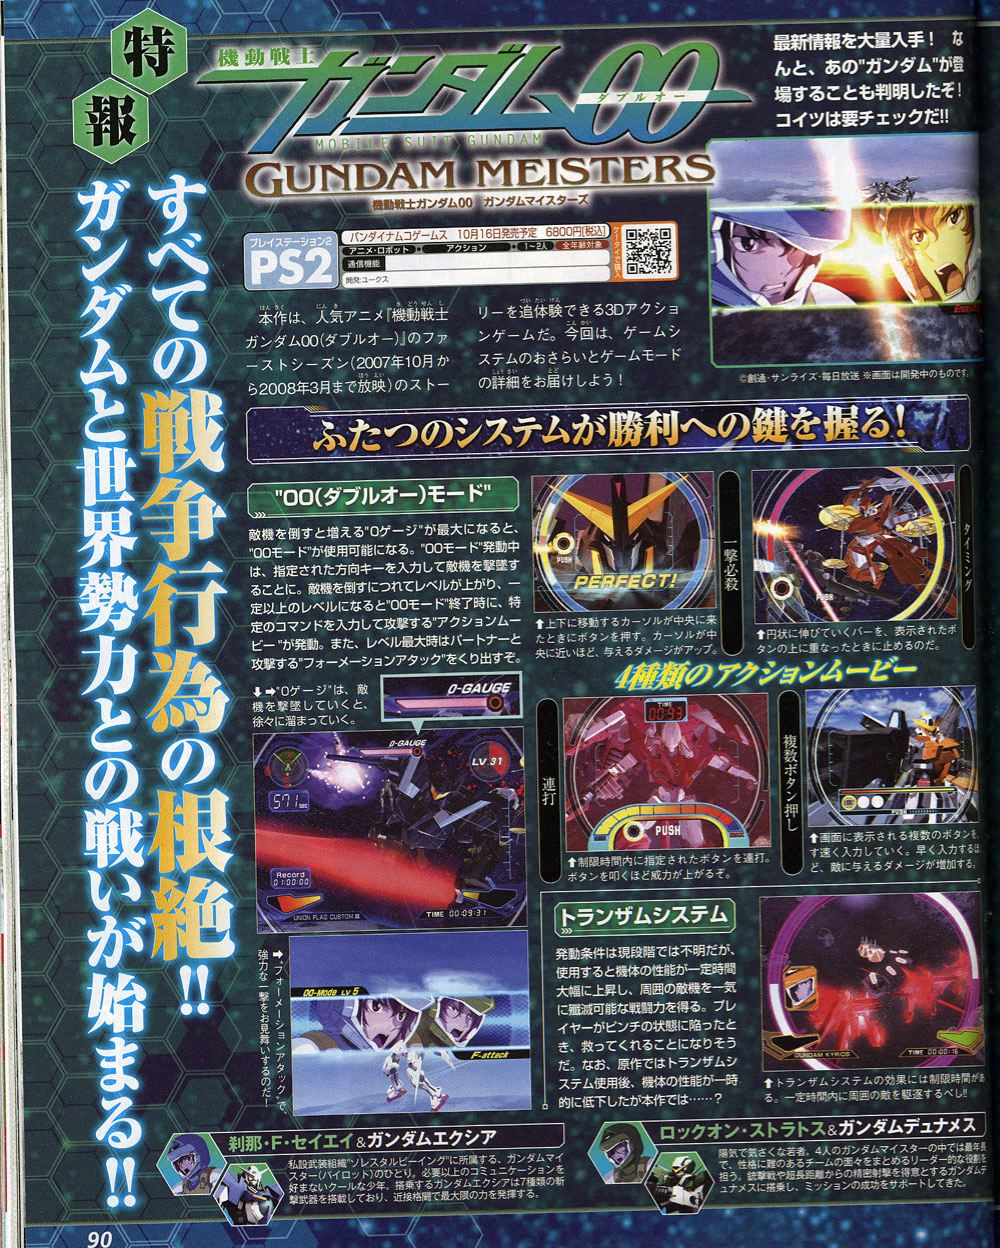 here are new scans for mobile suit gundam 00 gundam meisters